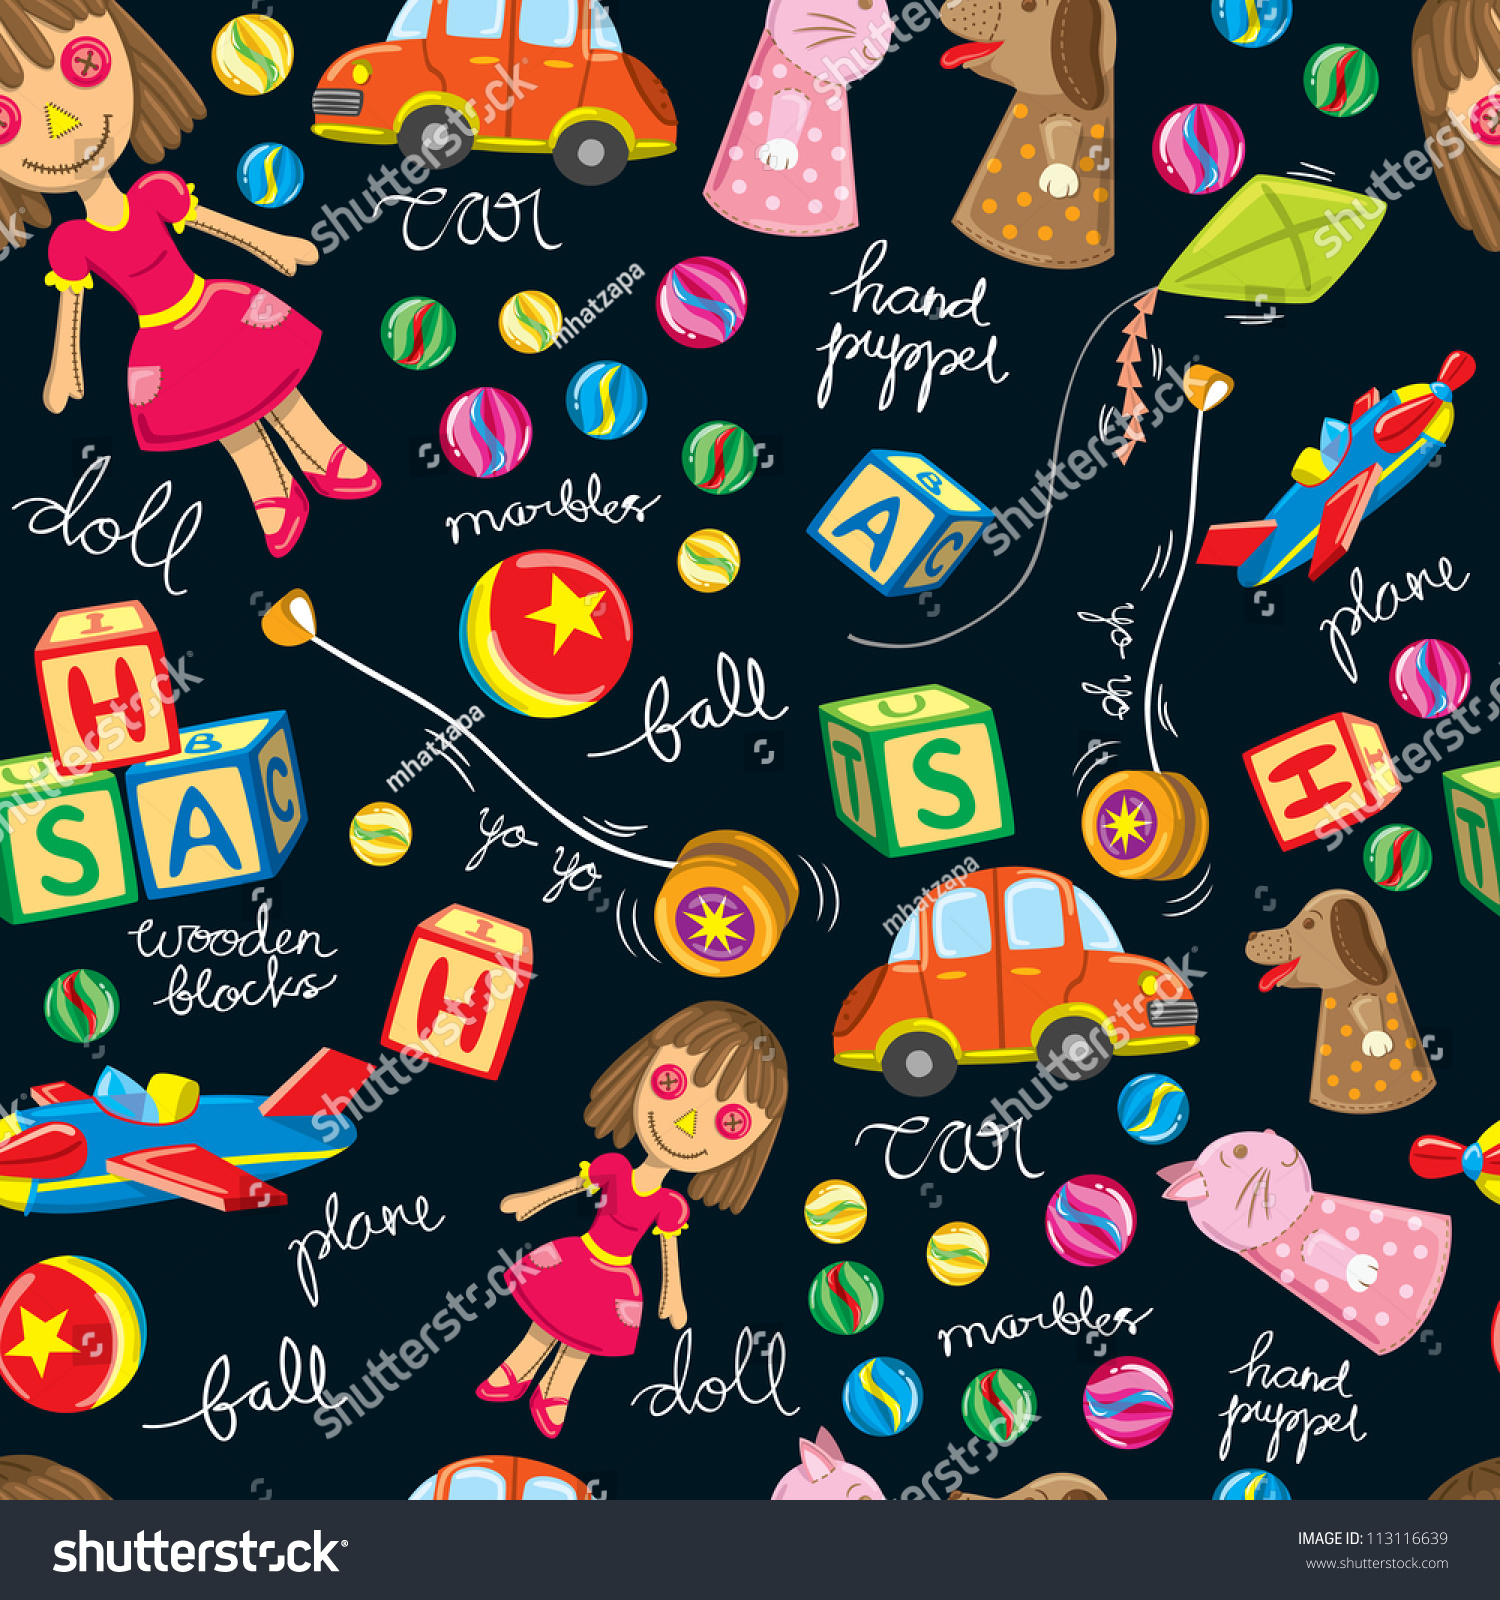 cute wrapping paper © 2009-2018 paper glitter, llc all rights reserved site design by kbecca we started our journey in 2009 with one mission to make cute paper crafting projects.